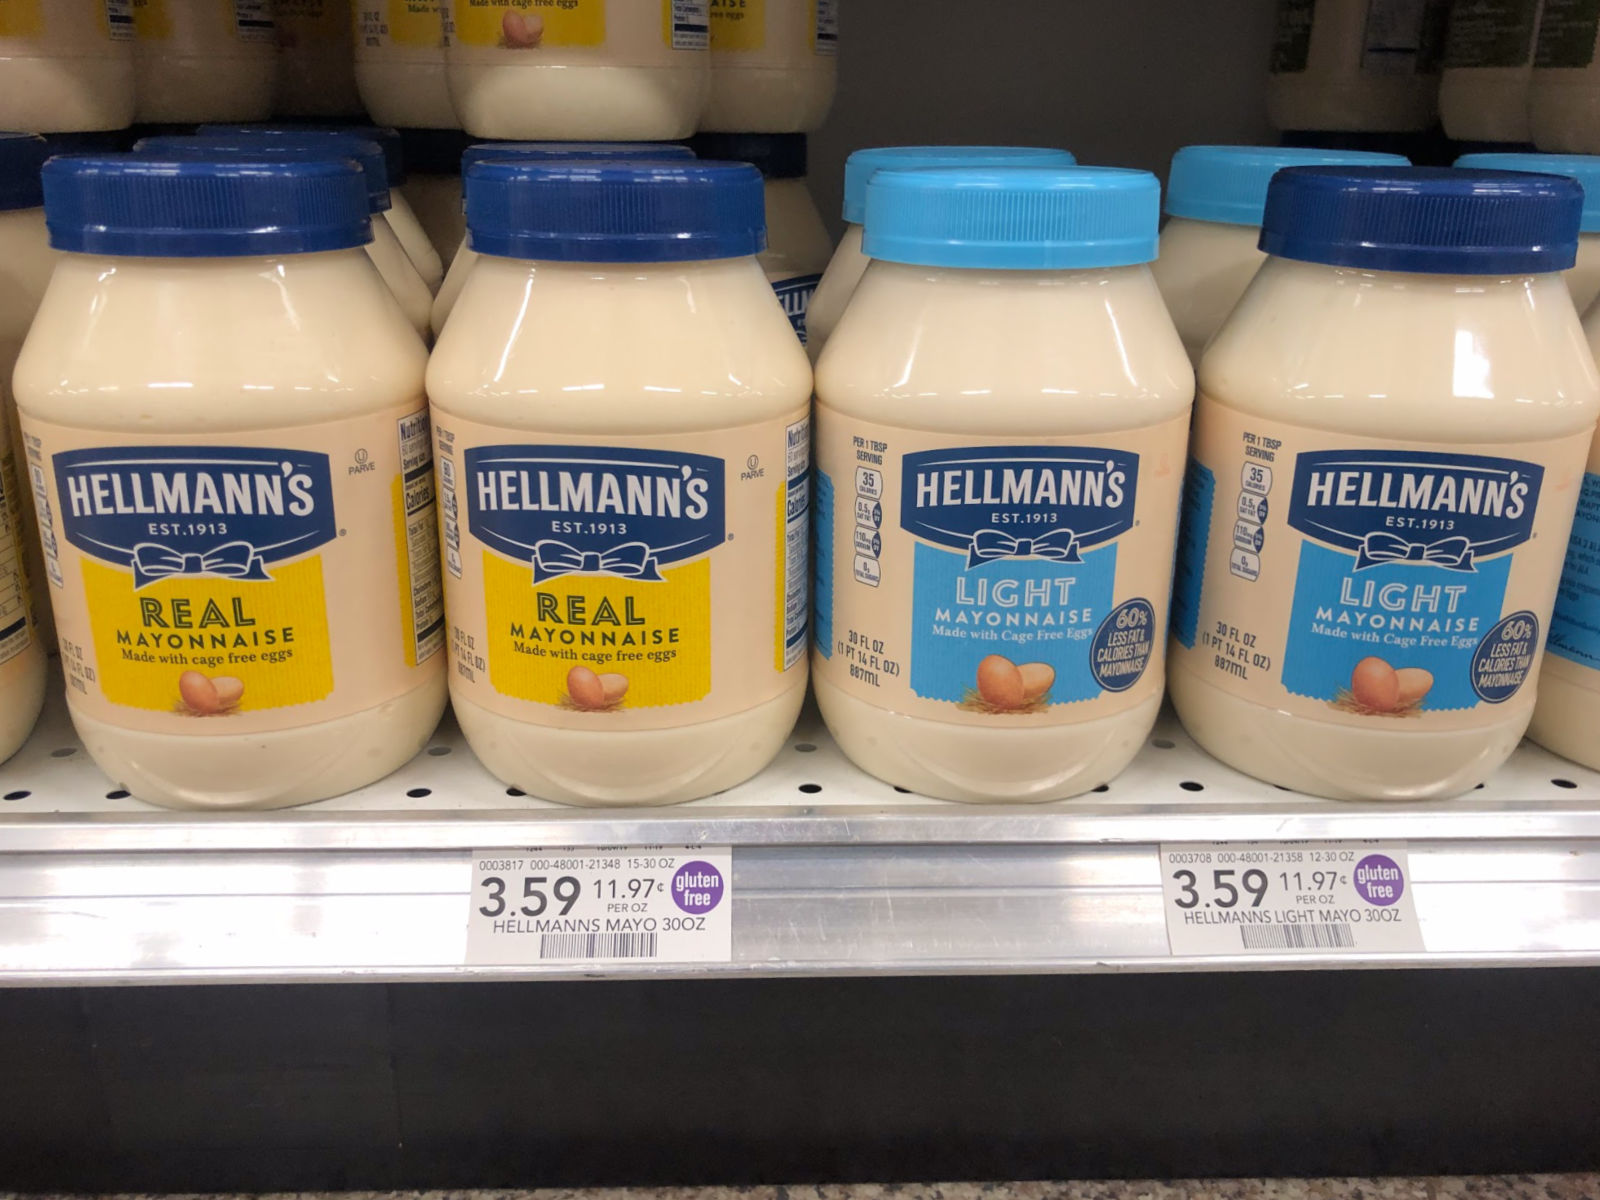 Big Savings On Hellmann's® Real Mayonnaise - Get Great Taste For All Your Favorite Holiday Recipes! on I Heart Publix